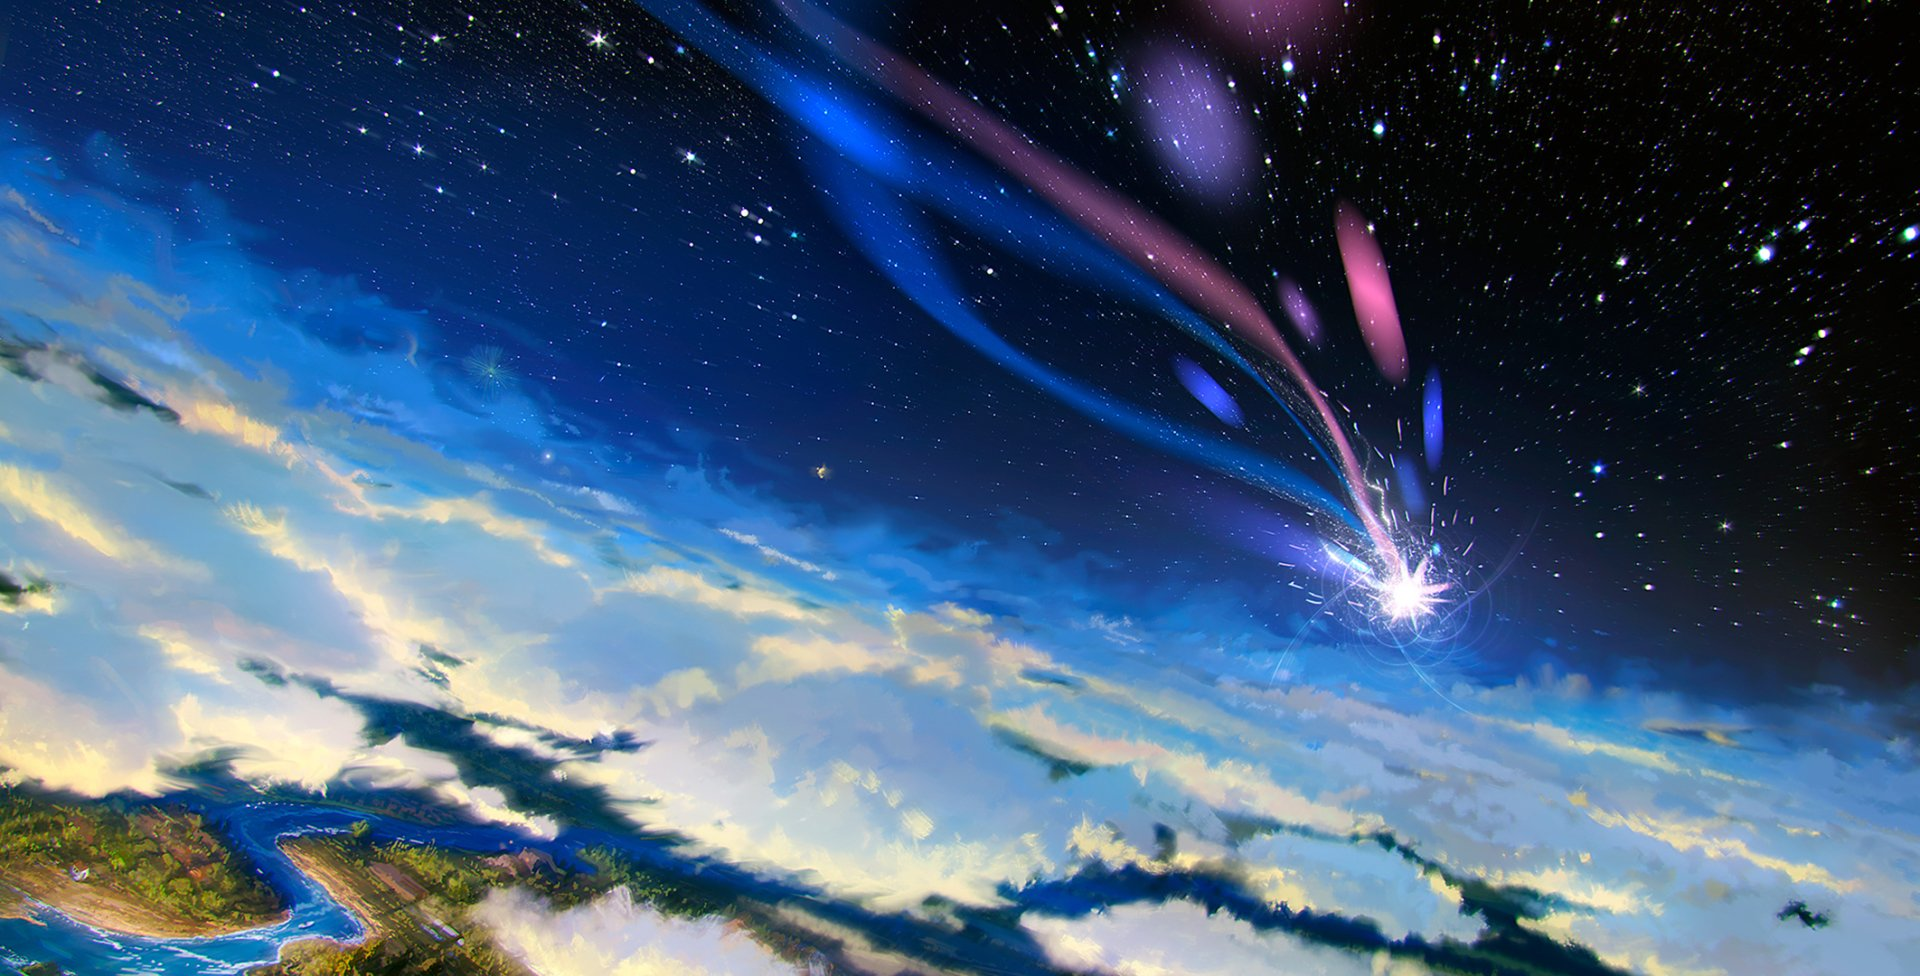 S Hd Image Wallpaper: Howl's Moving Castle Full HD Wallpaper And Background